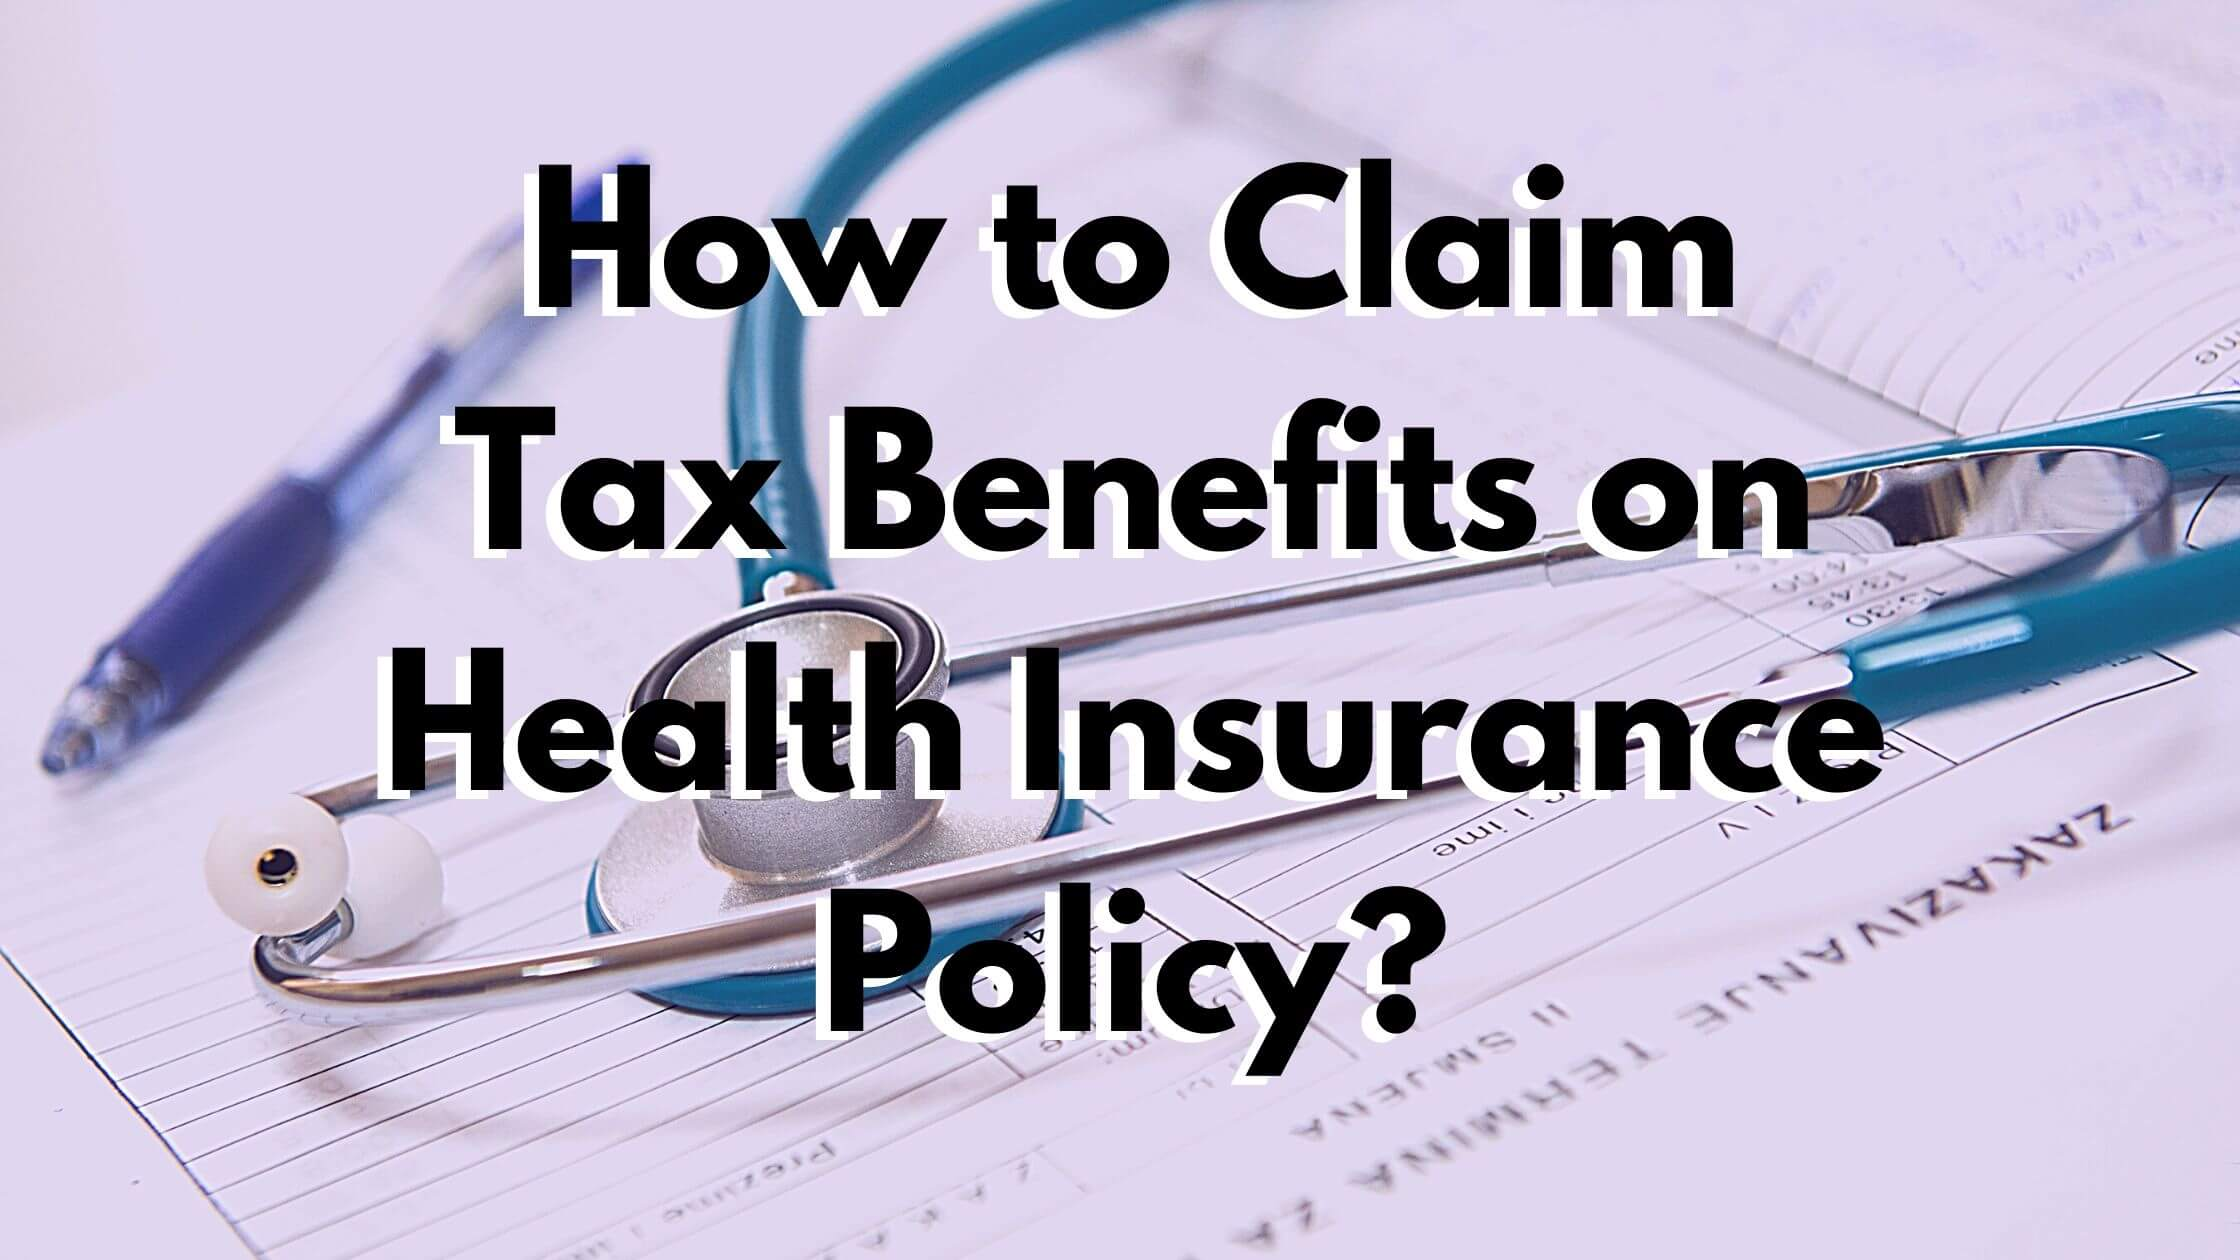 How to Claim Tax Benefits on Health Insurance Policy?